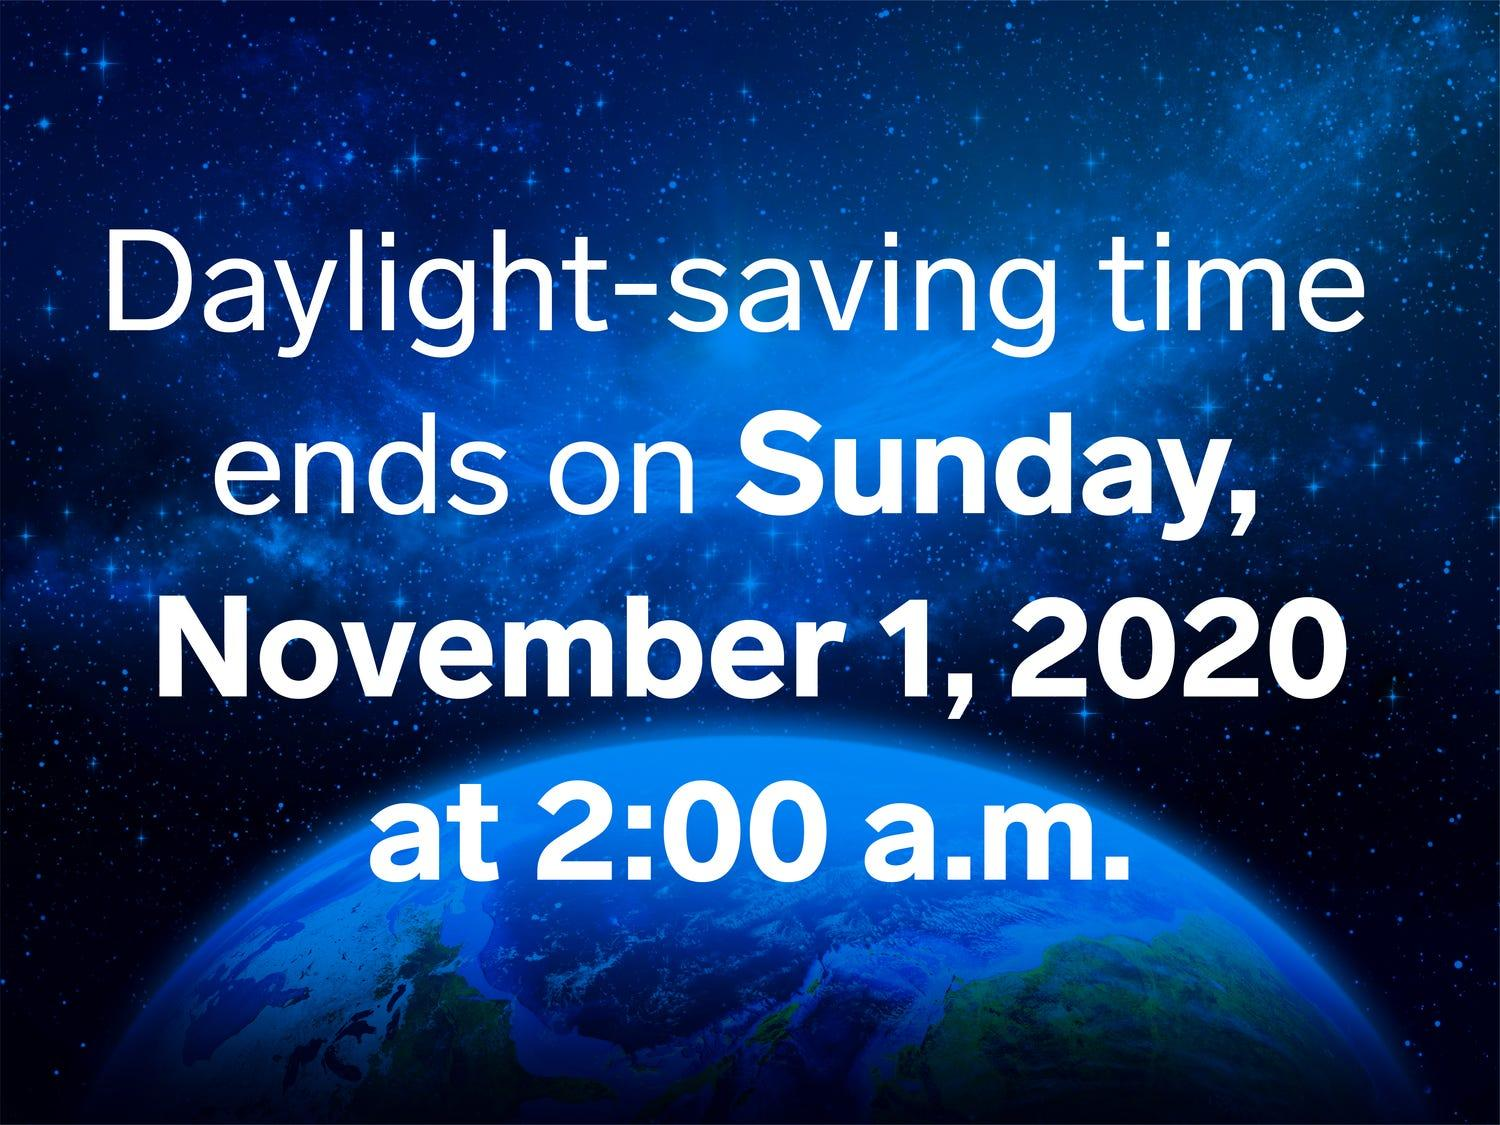 Daylight-saving time is literally killing us — but at least we'll get a little extra sleep this Sunday